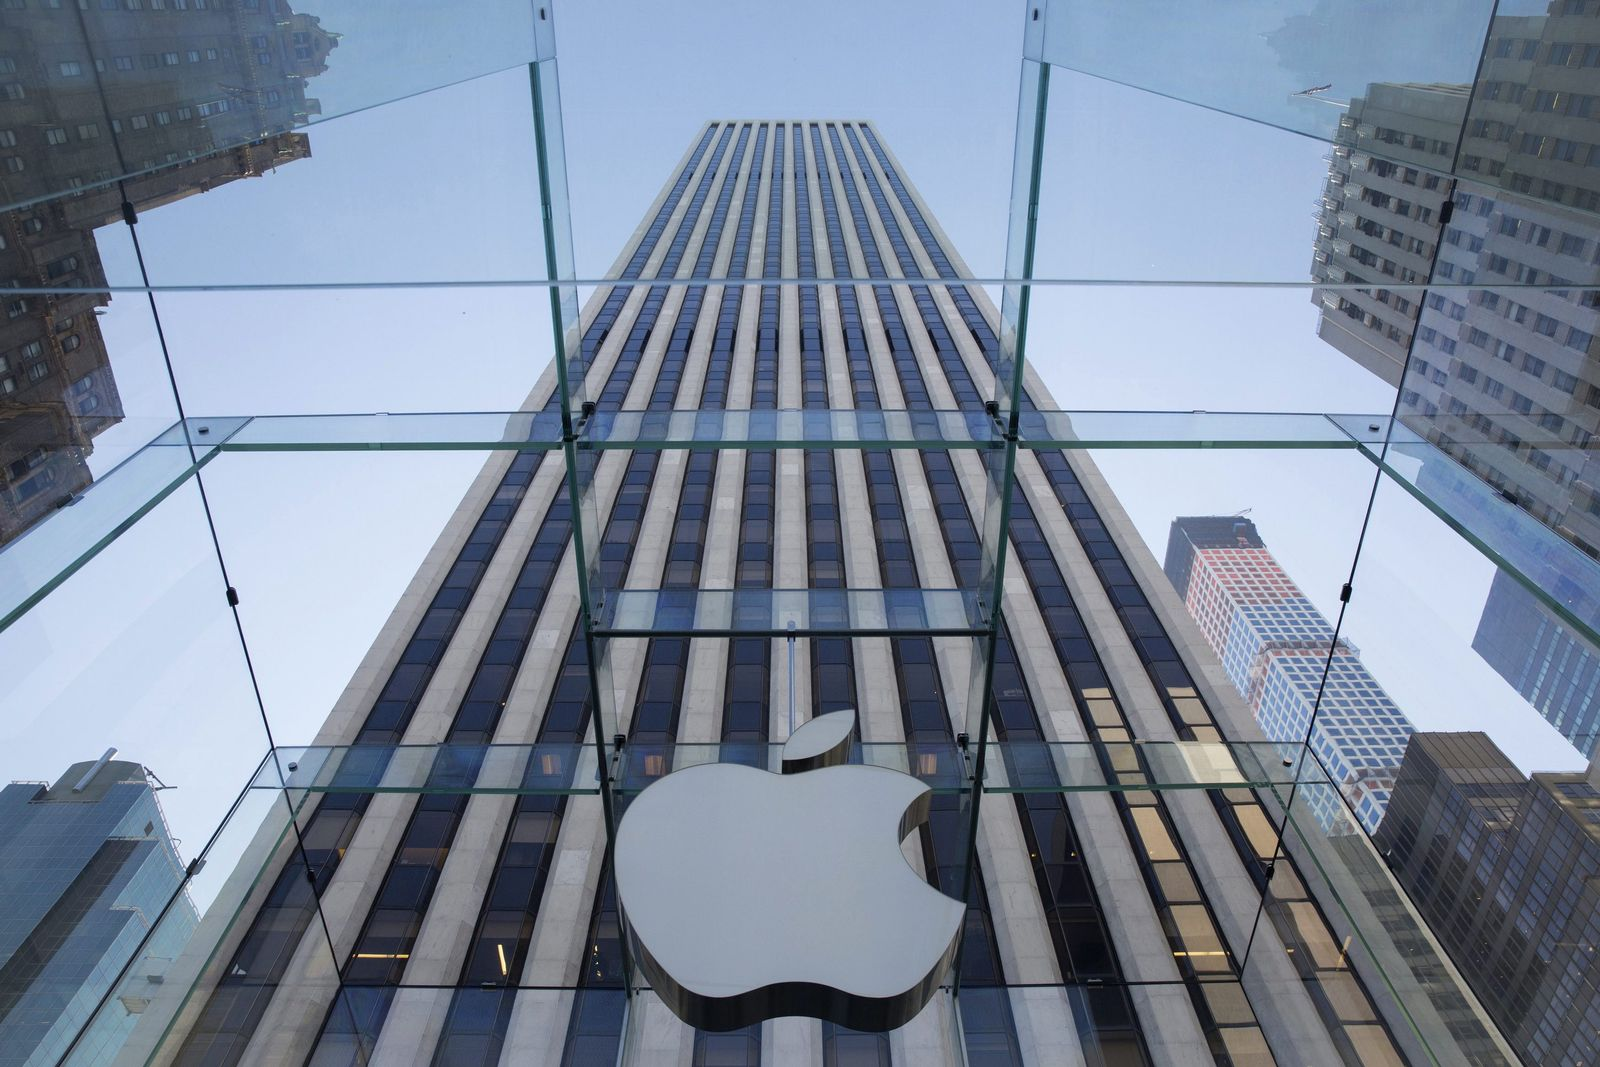 Fans line up outside flagship Apple Store ahead of iPhone 6 launc